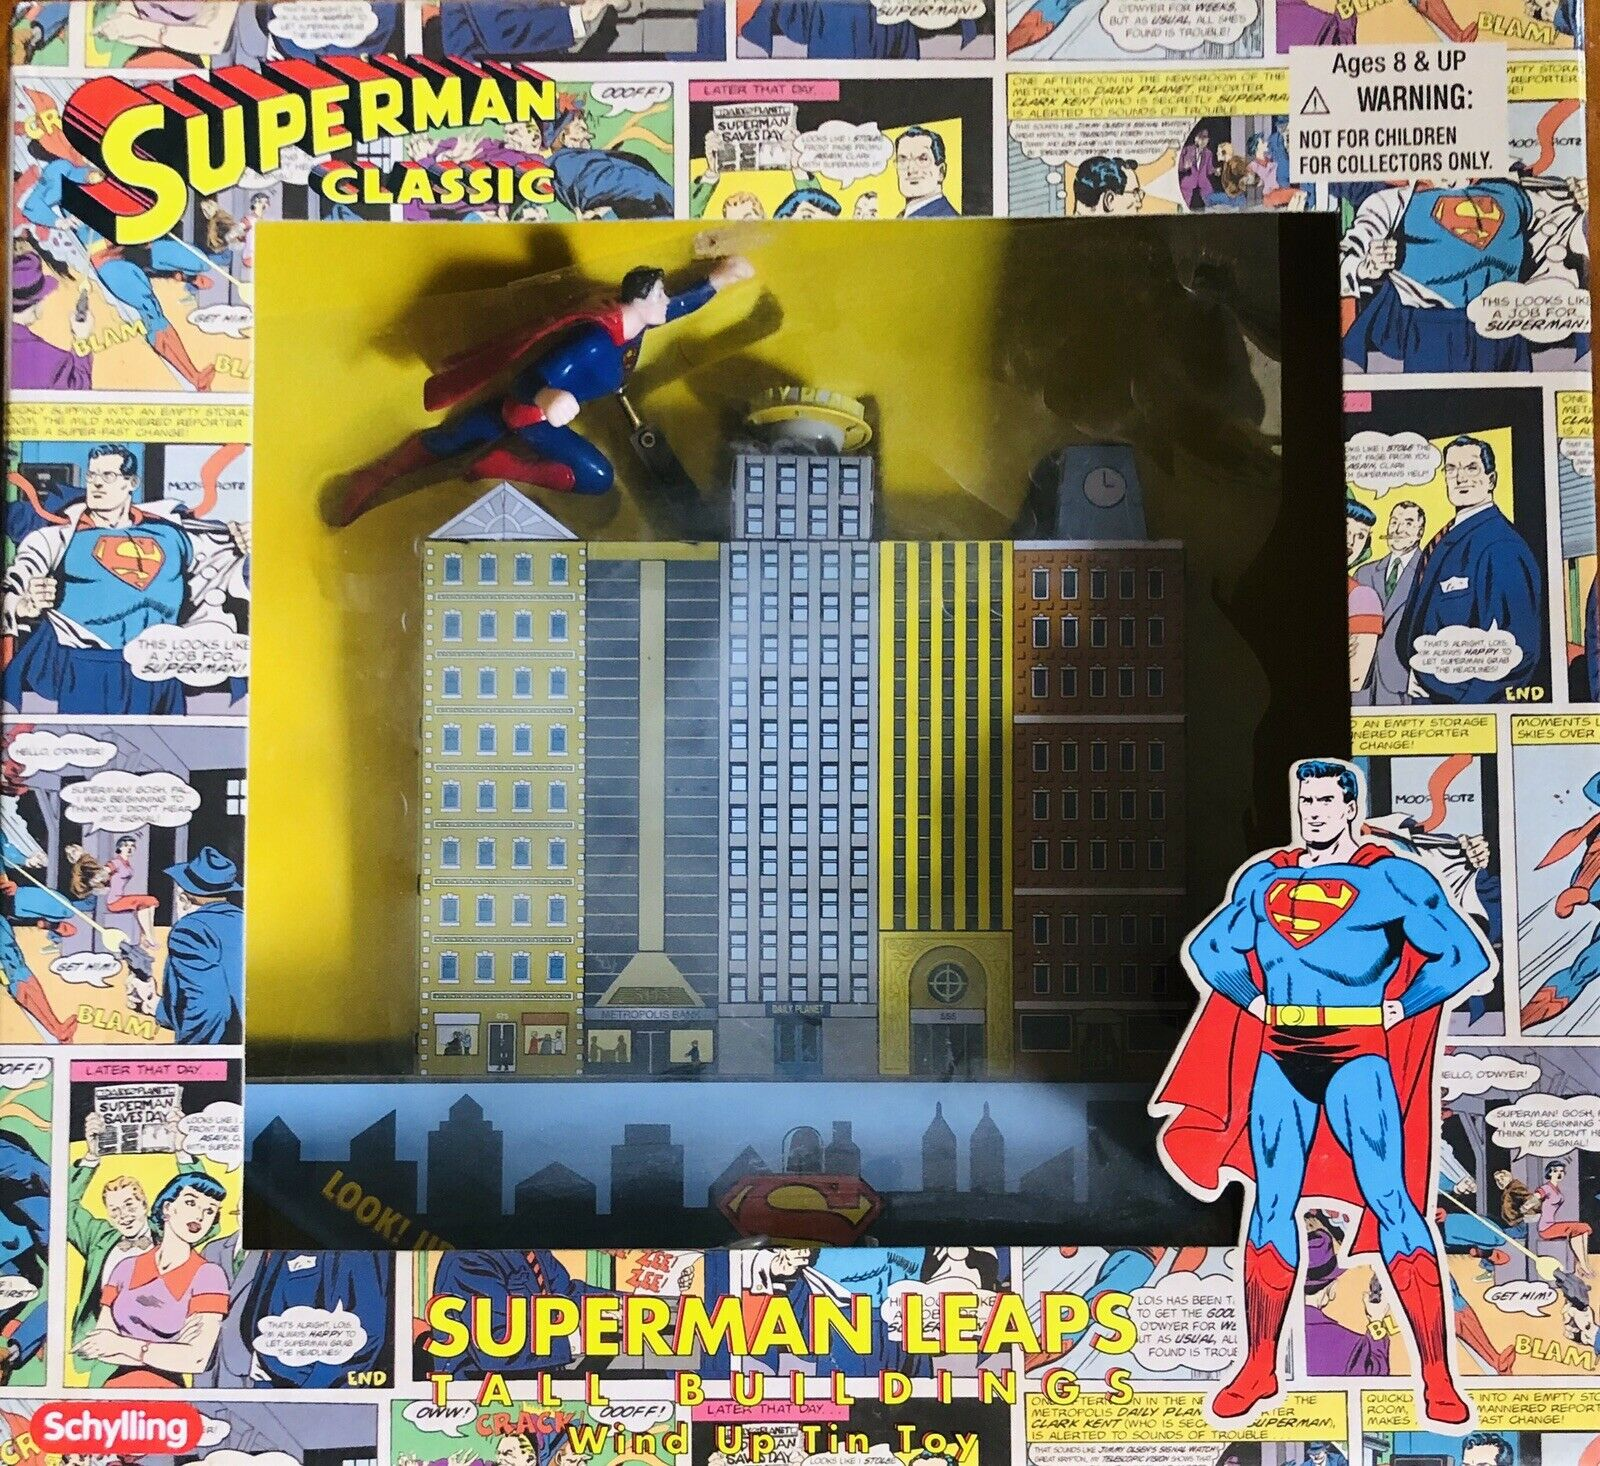 SCHYLLNG SUPERMAN CLASSIC LEAPS TALL BUILDING TOY NEW IN BOX